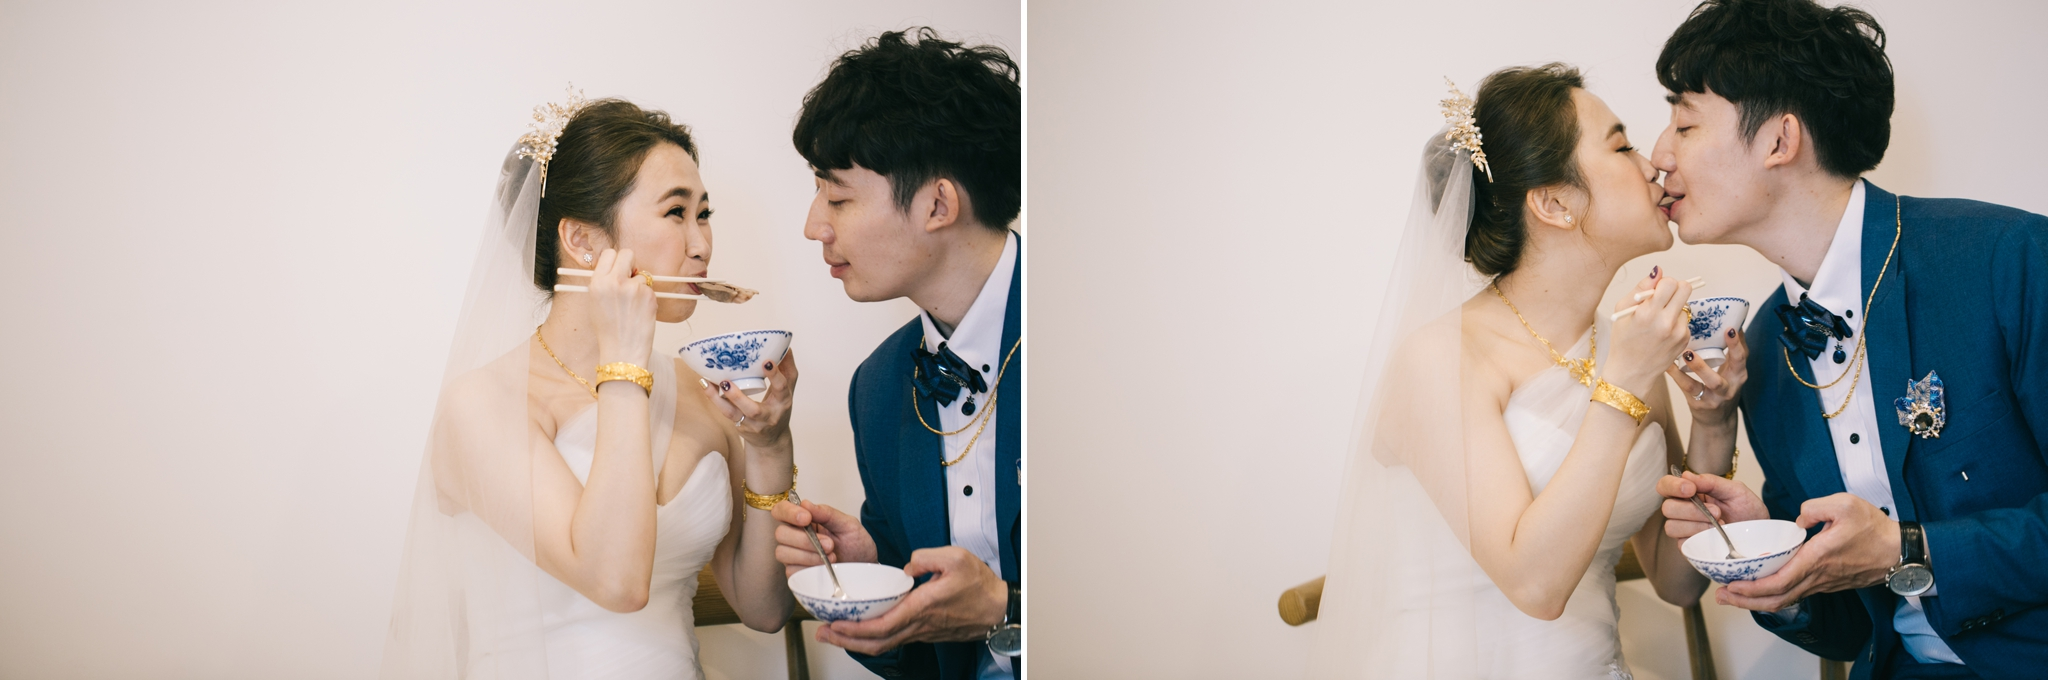 Keddy+Richard-wedding-新莊頤品飯店-134.jpg